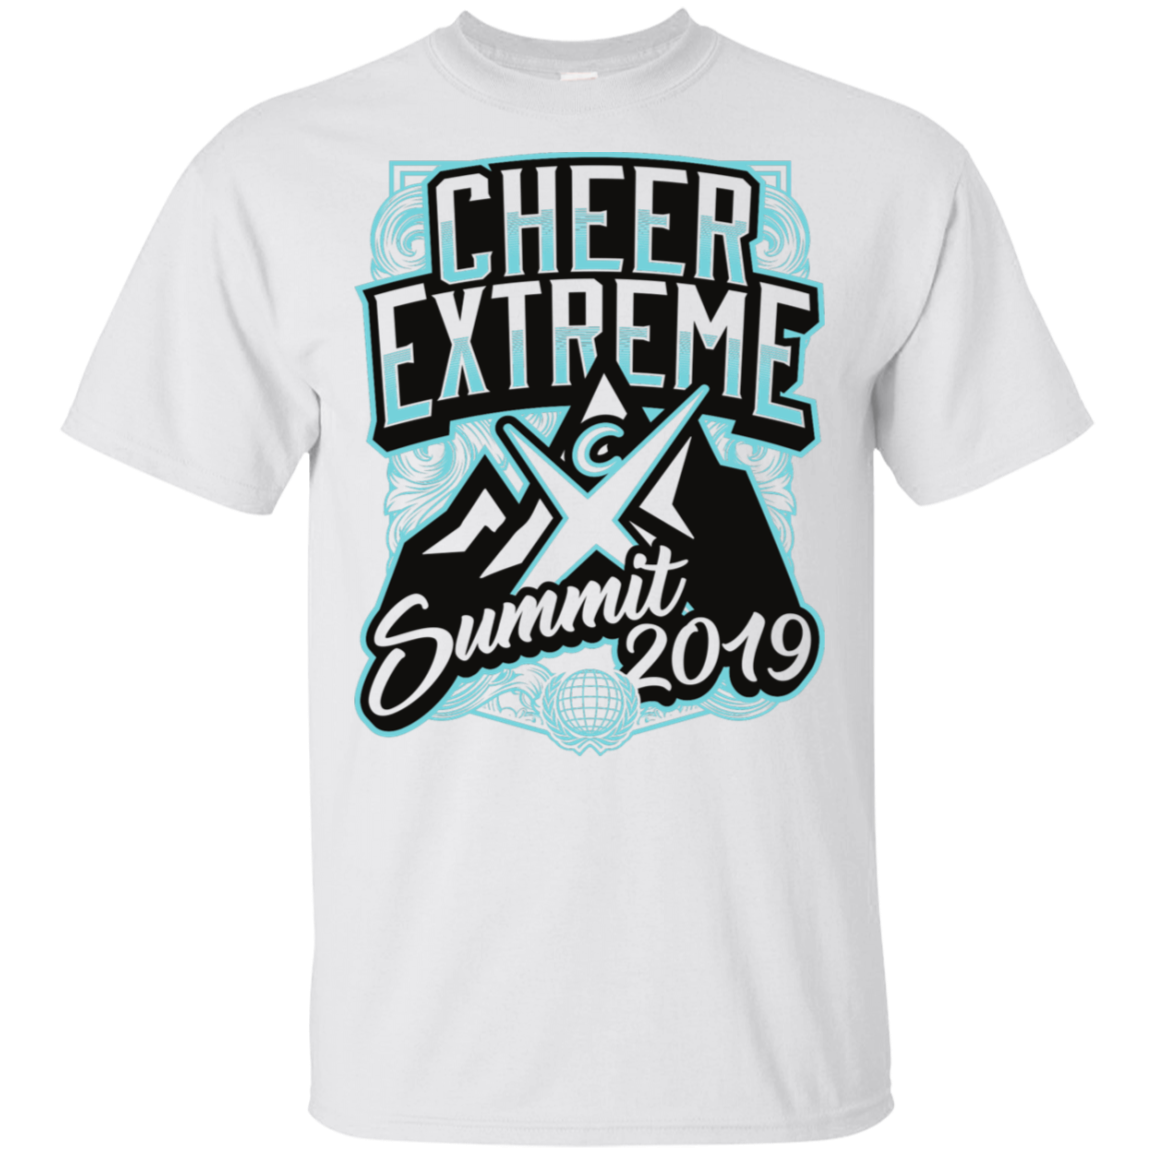 cheer-extreme-summit-2019_image